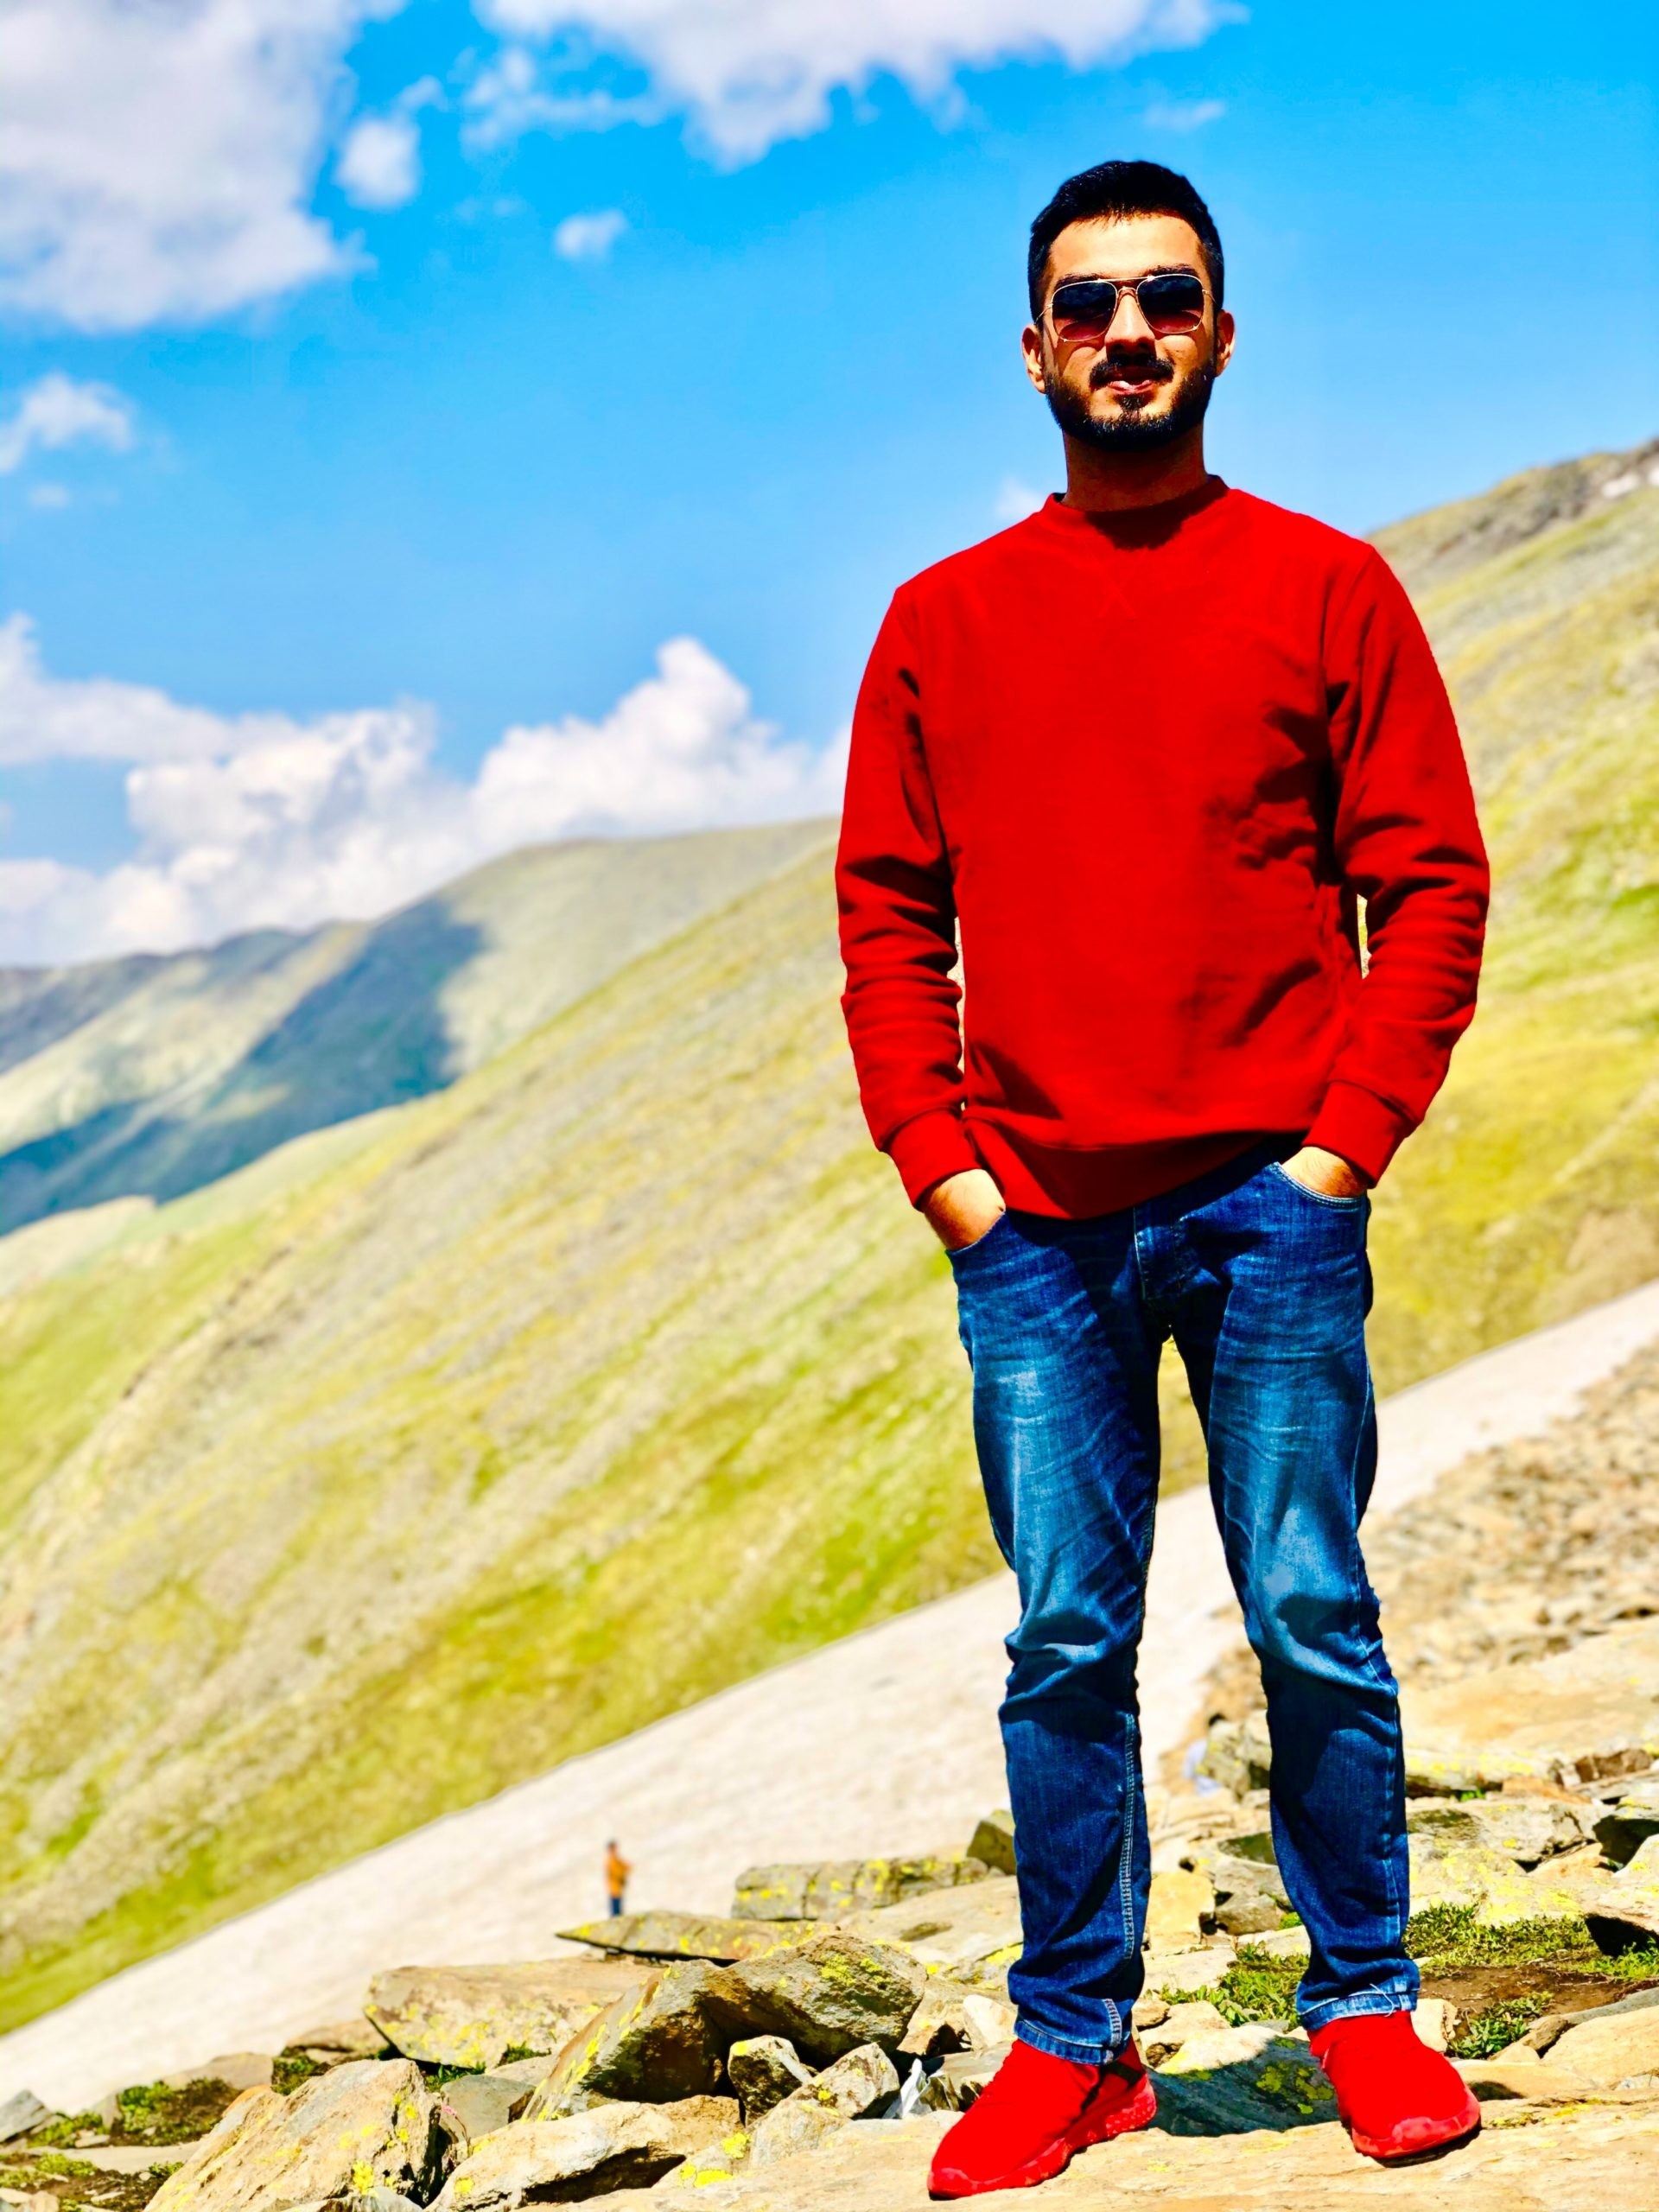 Usman Afzal is a digital marketer has a network of over 50 million readers